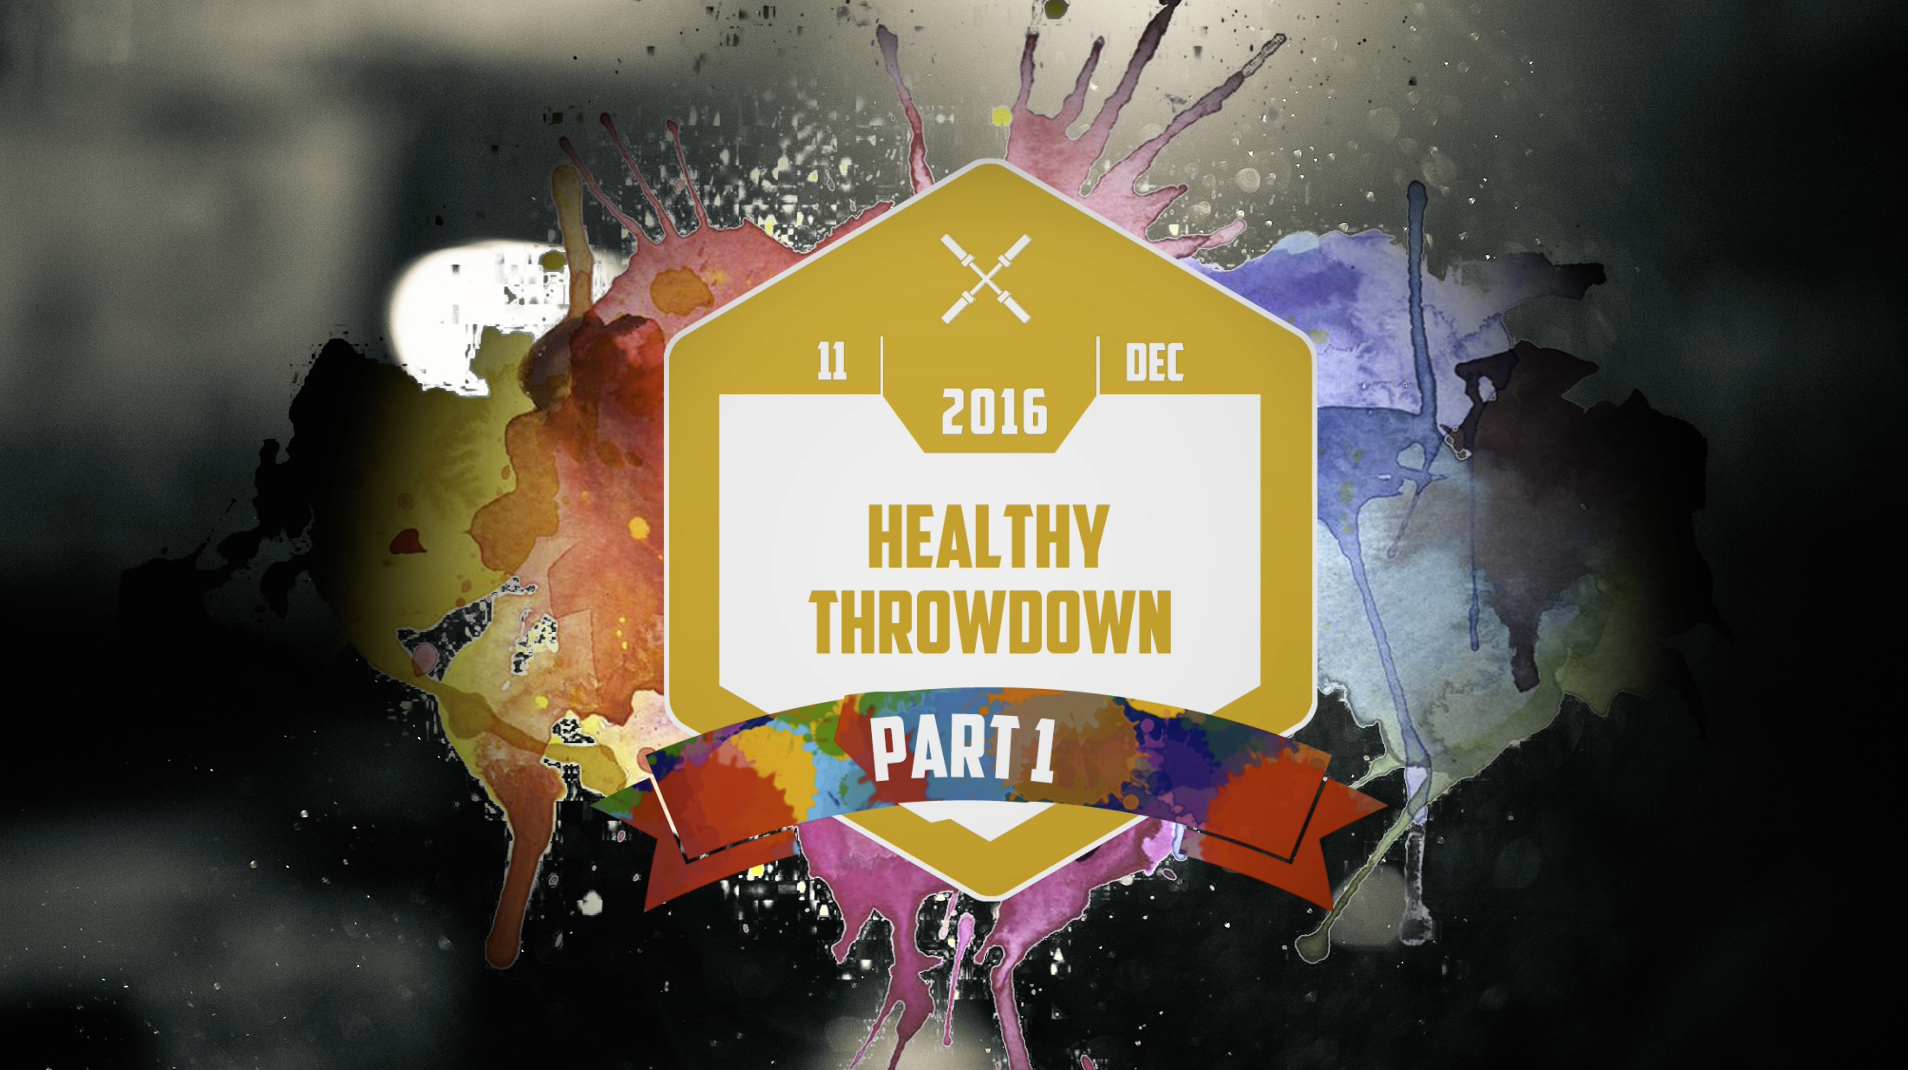 [Crossfit] Healthy Throwdown Part 1